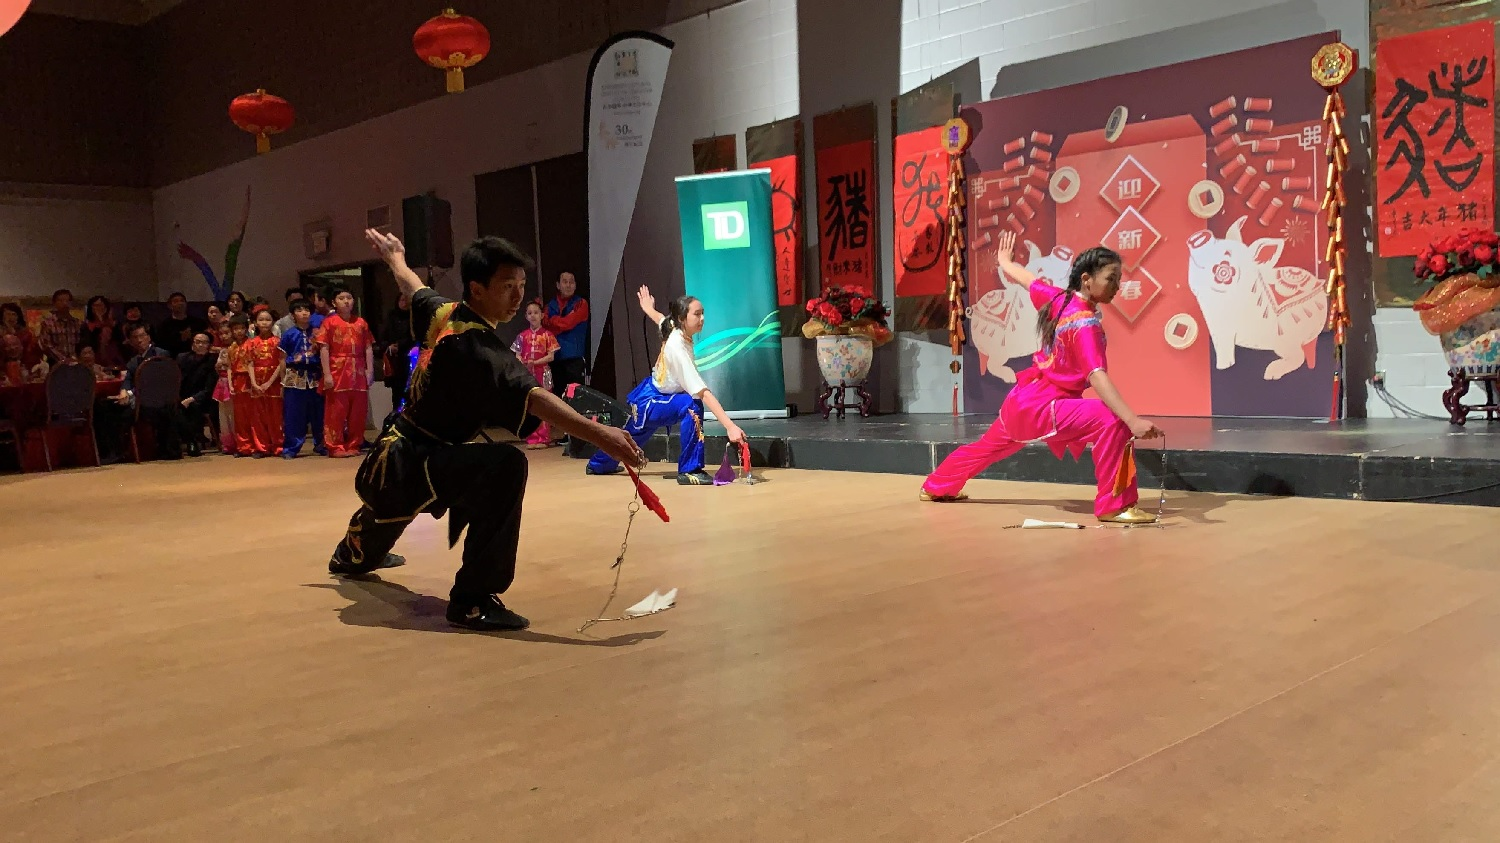 wayland-li-wushu-year-of-the-pig-dinner-chinese-cultural-centre-2019-05.jpg